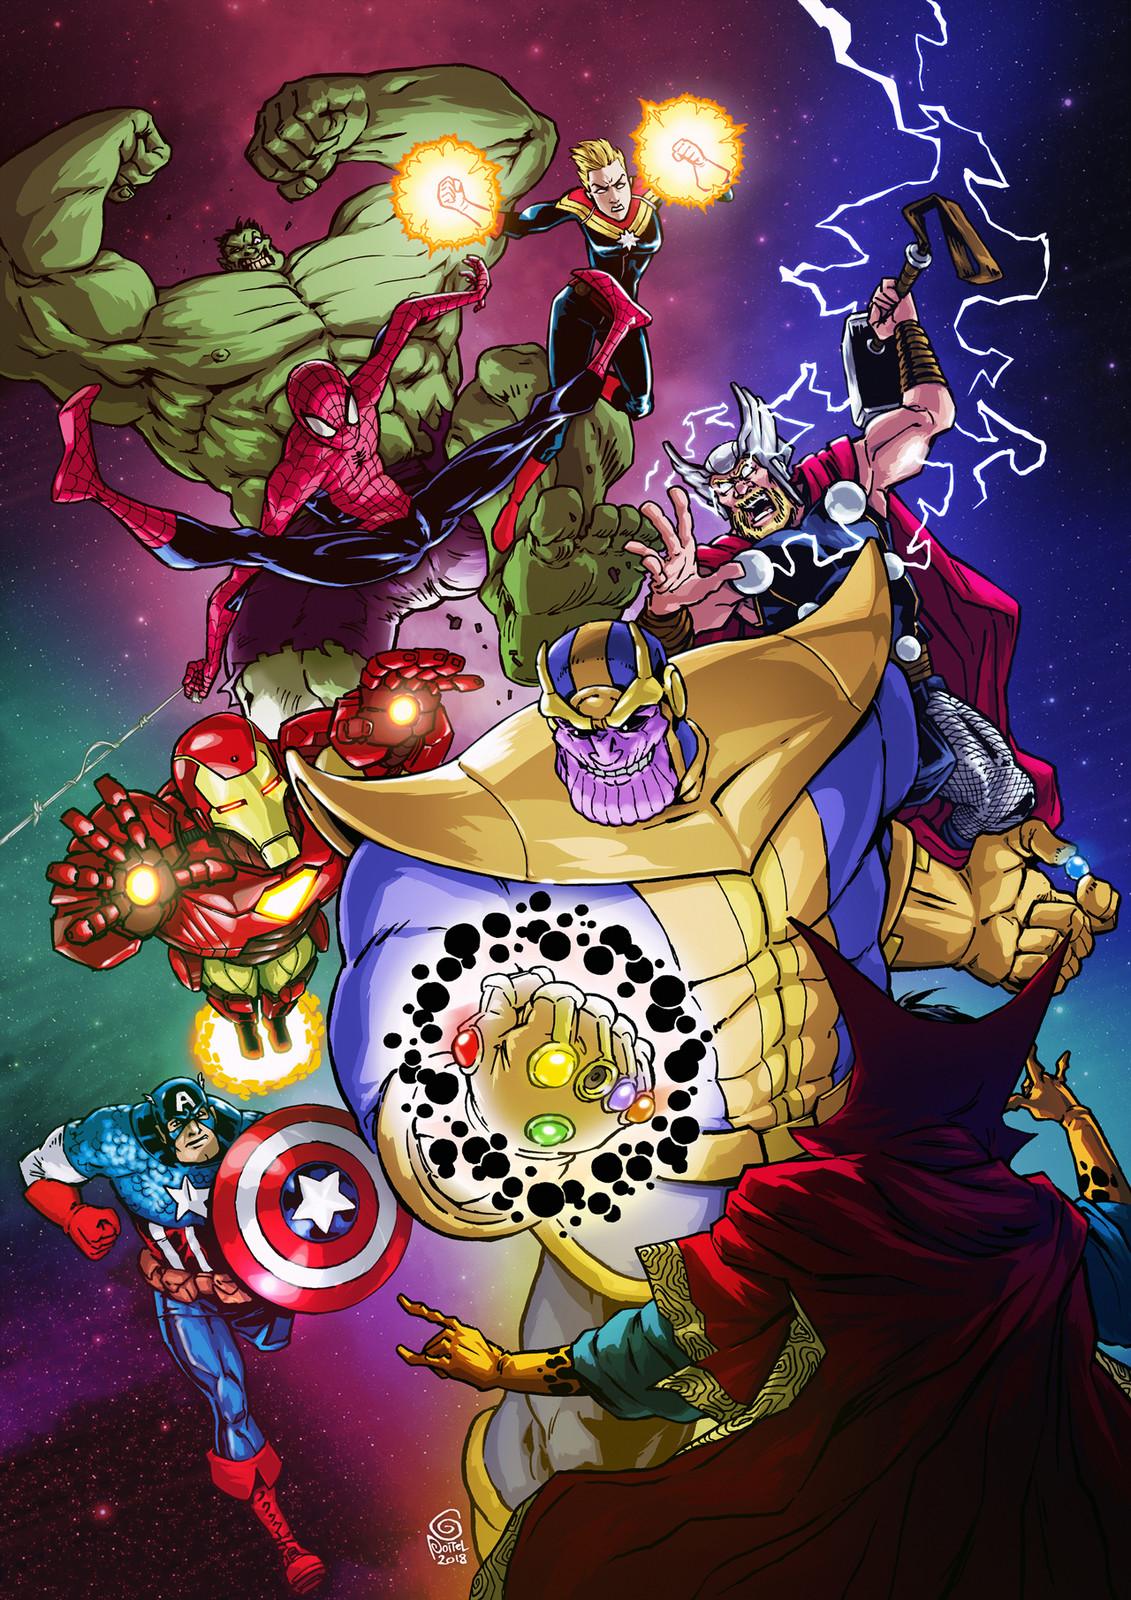 Avengers & the Infinity gauntlet